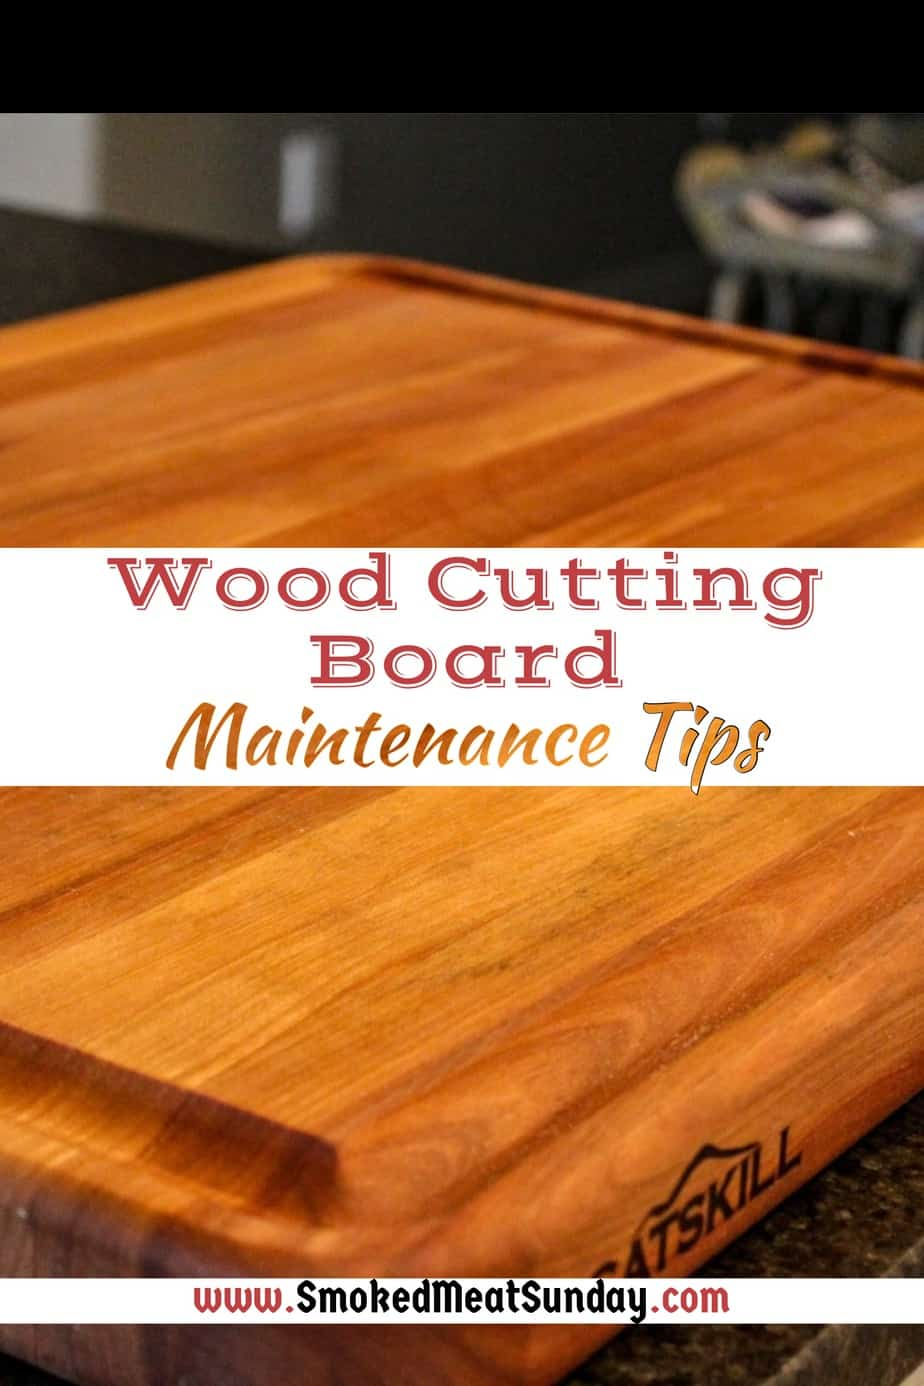 Do you have a wood cutting board? Follow these tips for wood cutting board care that will help you keep your wood cutting board looking new for years to come.